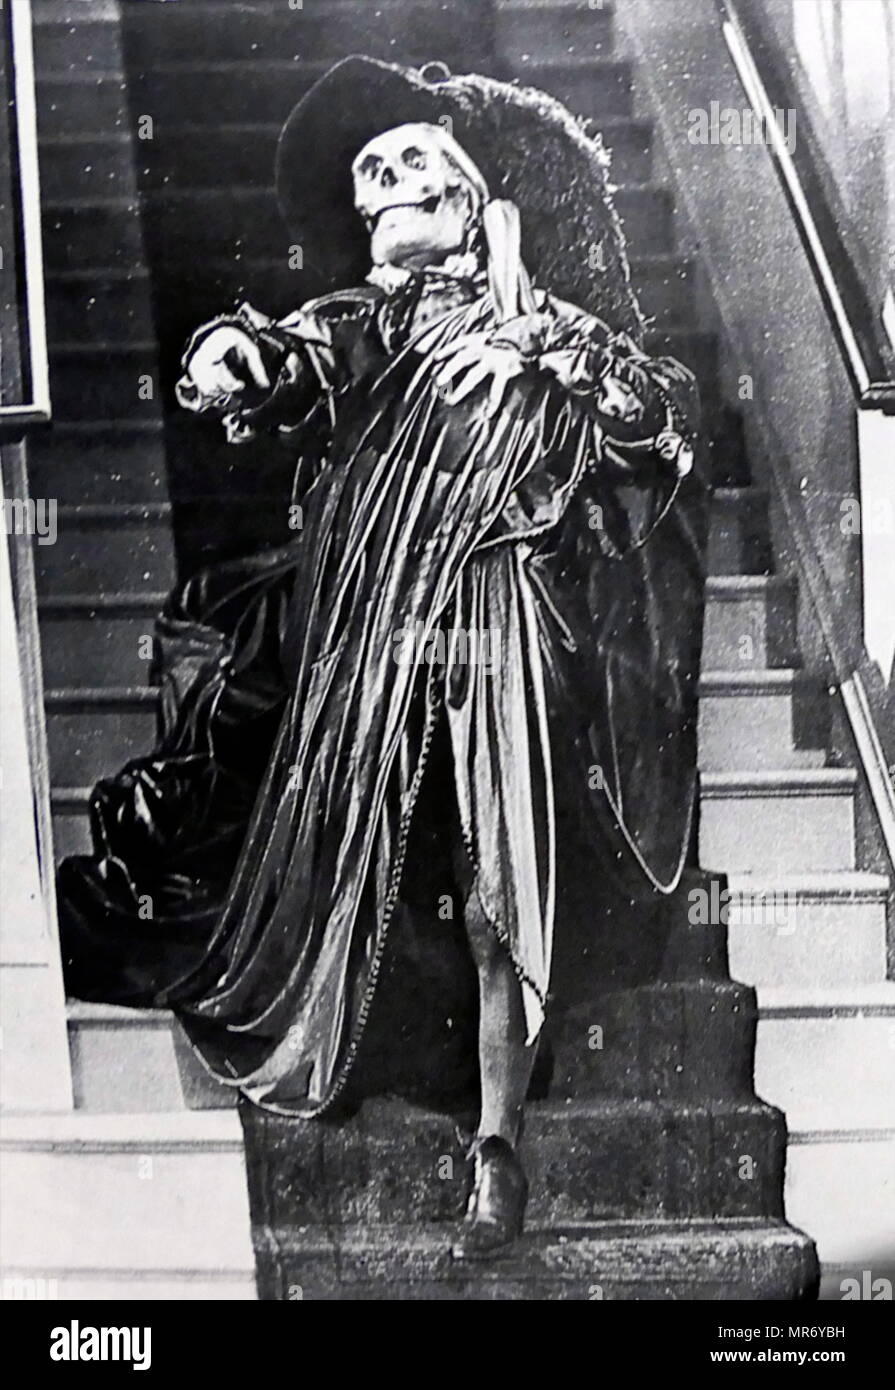 Lon Chaney in 'The Phantom of the Opera' a 1925 American silent horror film adaptation of Gaston Leroux's 1910 novel, directed by Rupert Julian and starring Lon Chaney, Sr. in the title role. Lon Chaney (1883 – 1930); American stage and film actor, make-up artist, director and screenwriter. renowned for his characterizations of tortured, often grotesque and afflicted characters, and his ground-breaking artistry with makeup. - Stock Image